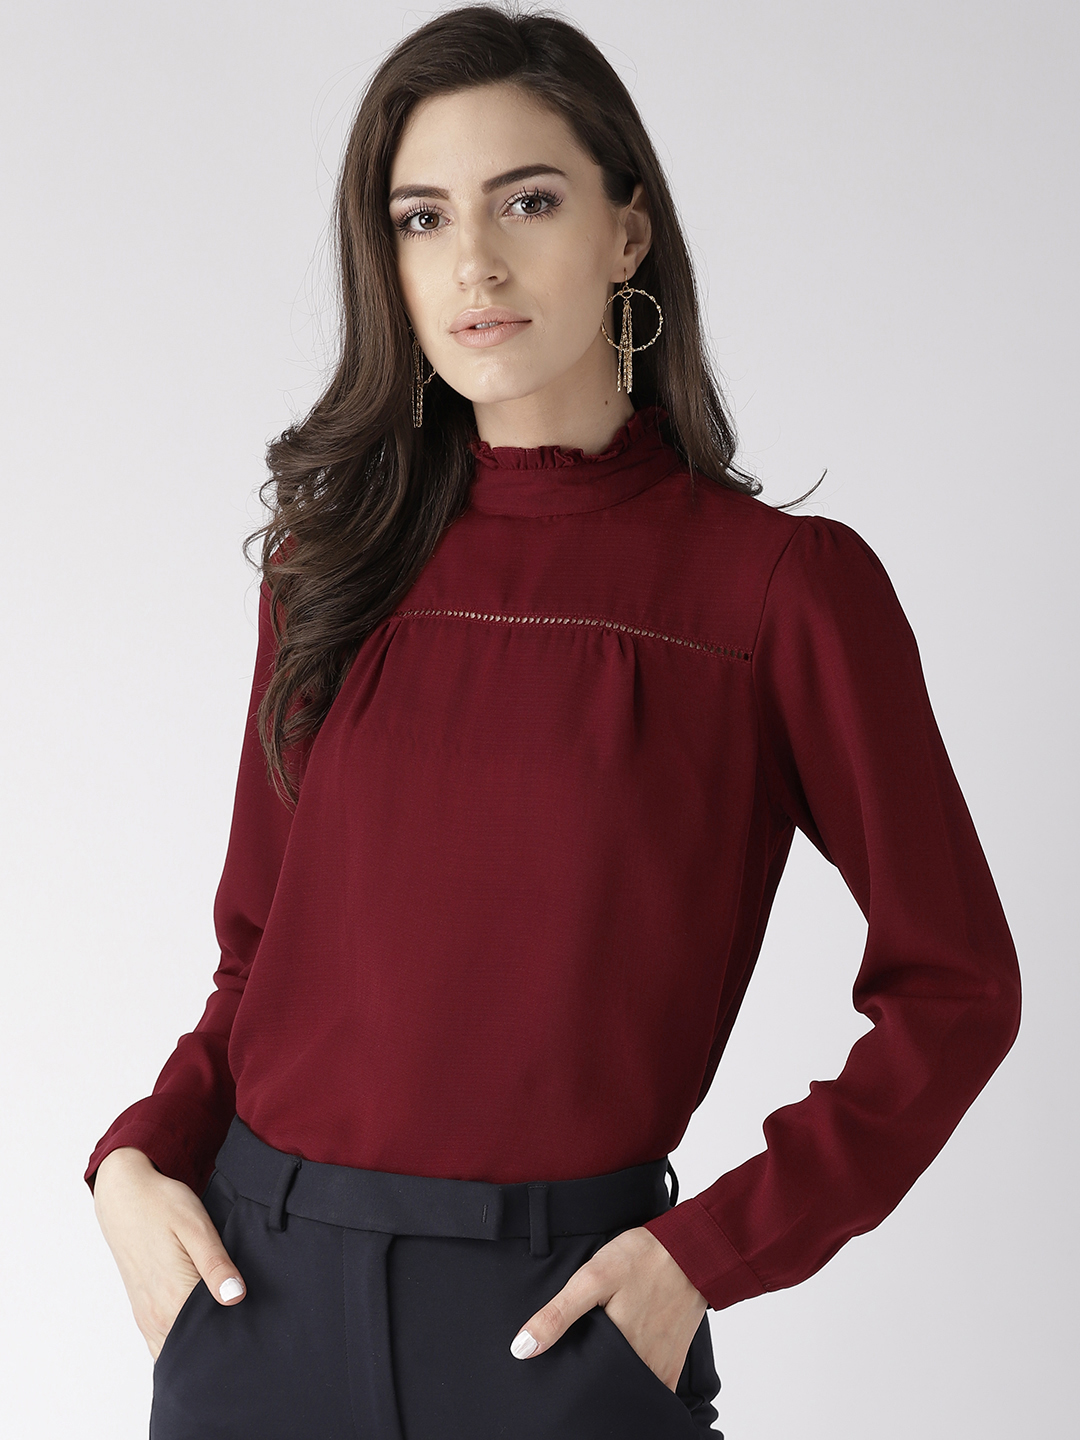 Tops-The New Look Maroon Top1